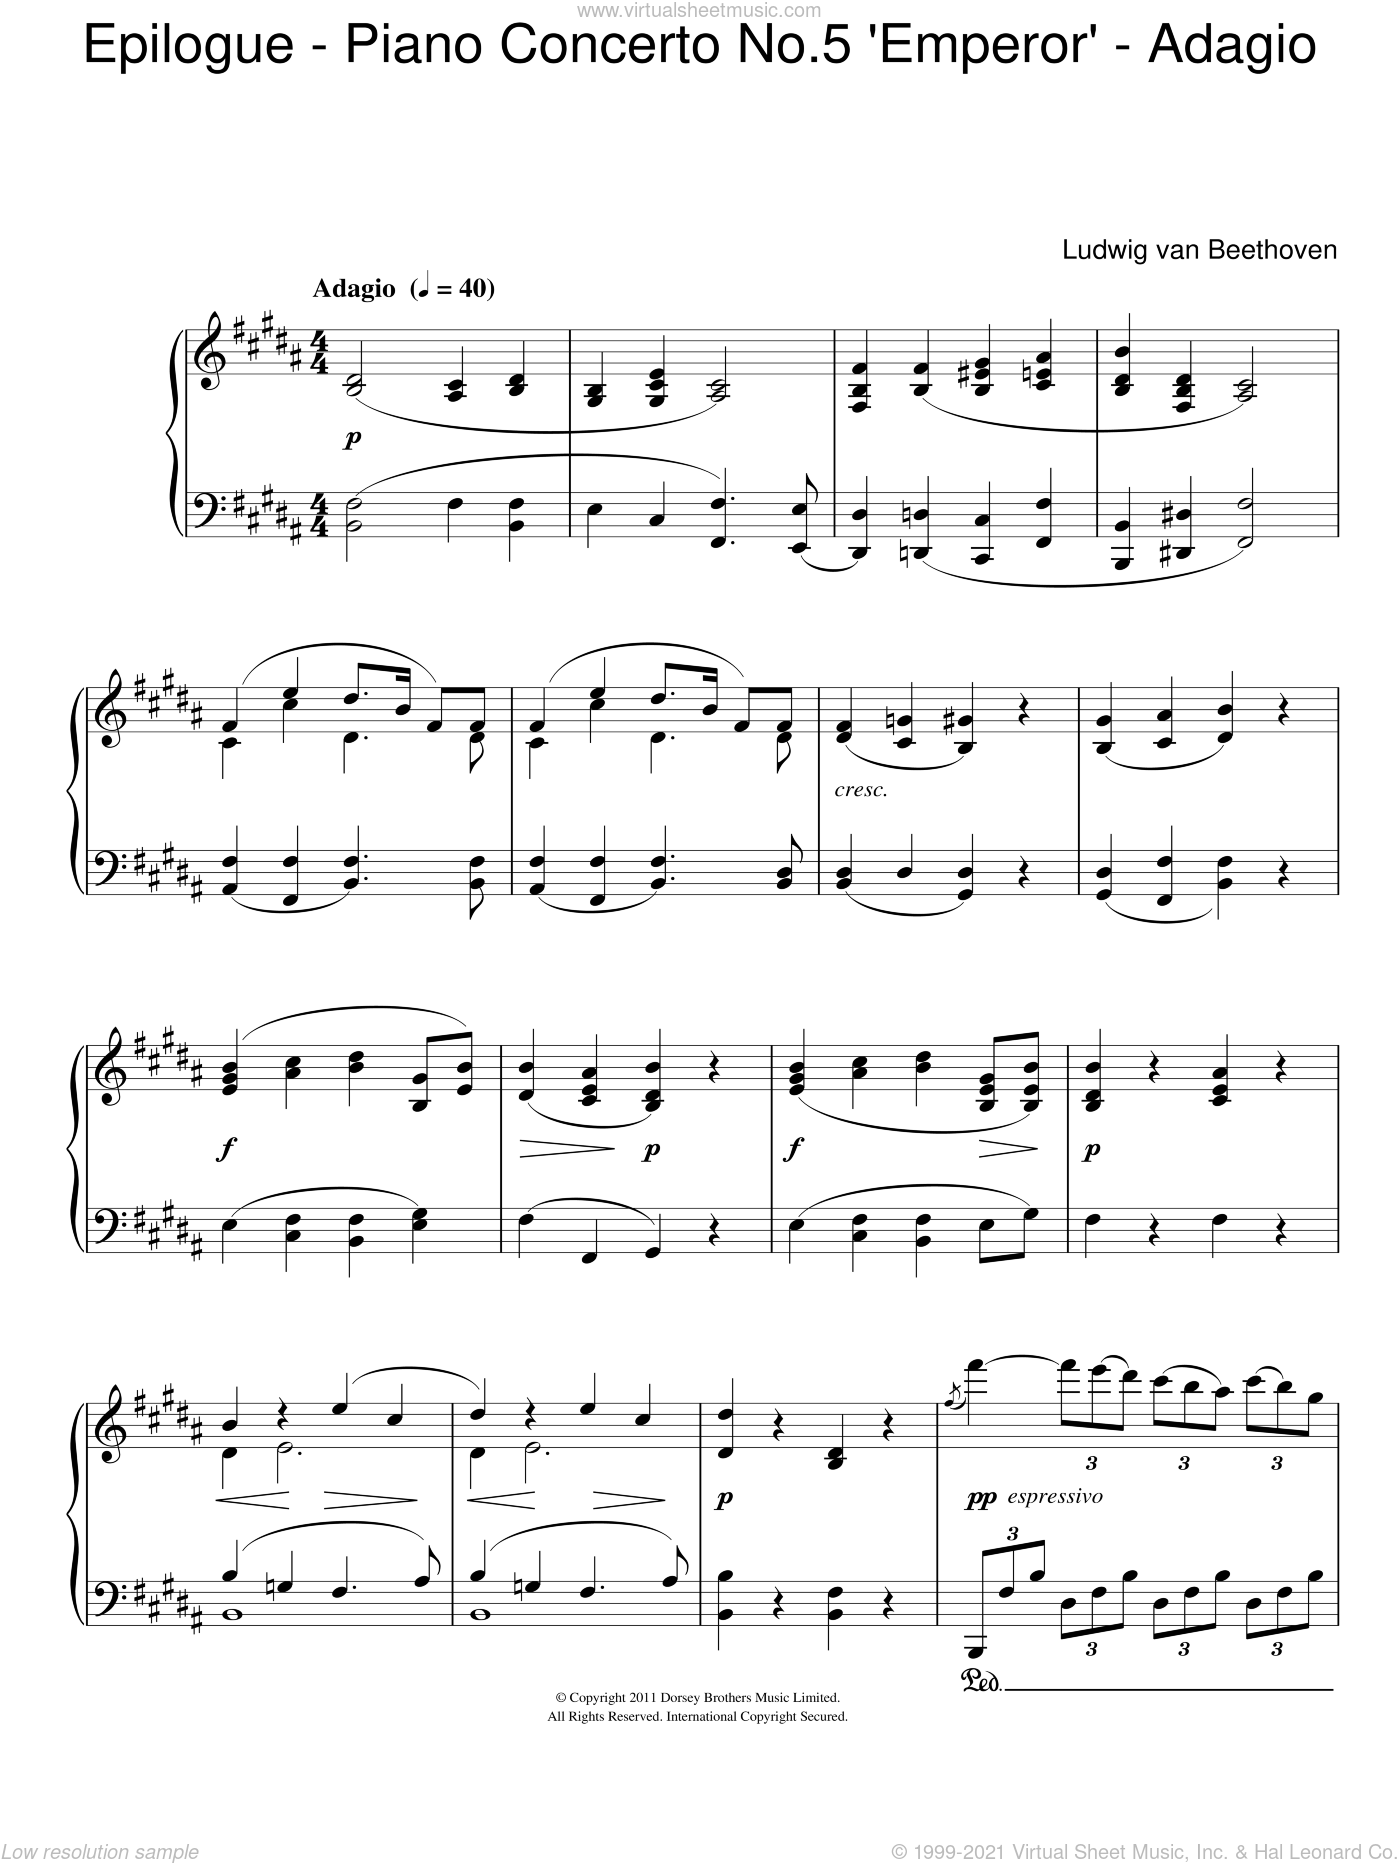 Epilogue (Piano Concerto No.5